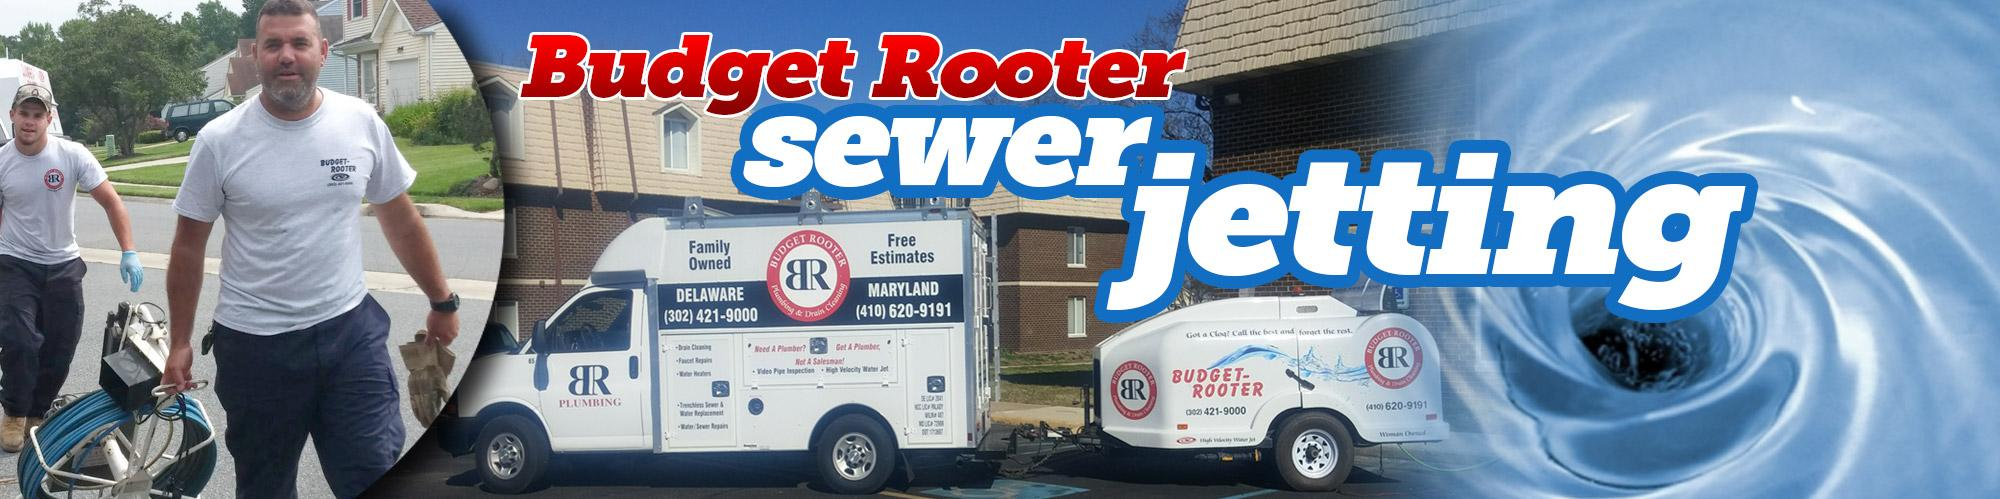 Sewer Jetting Services in Budget Rooter inNew Castle County, DE